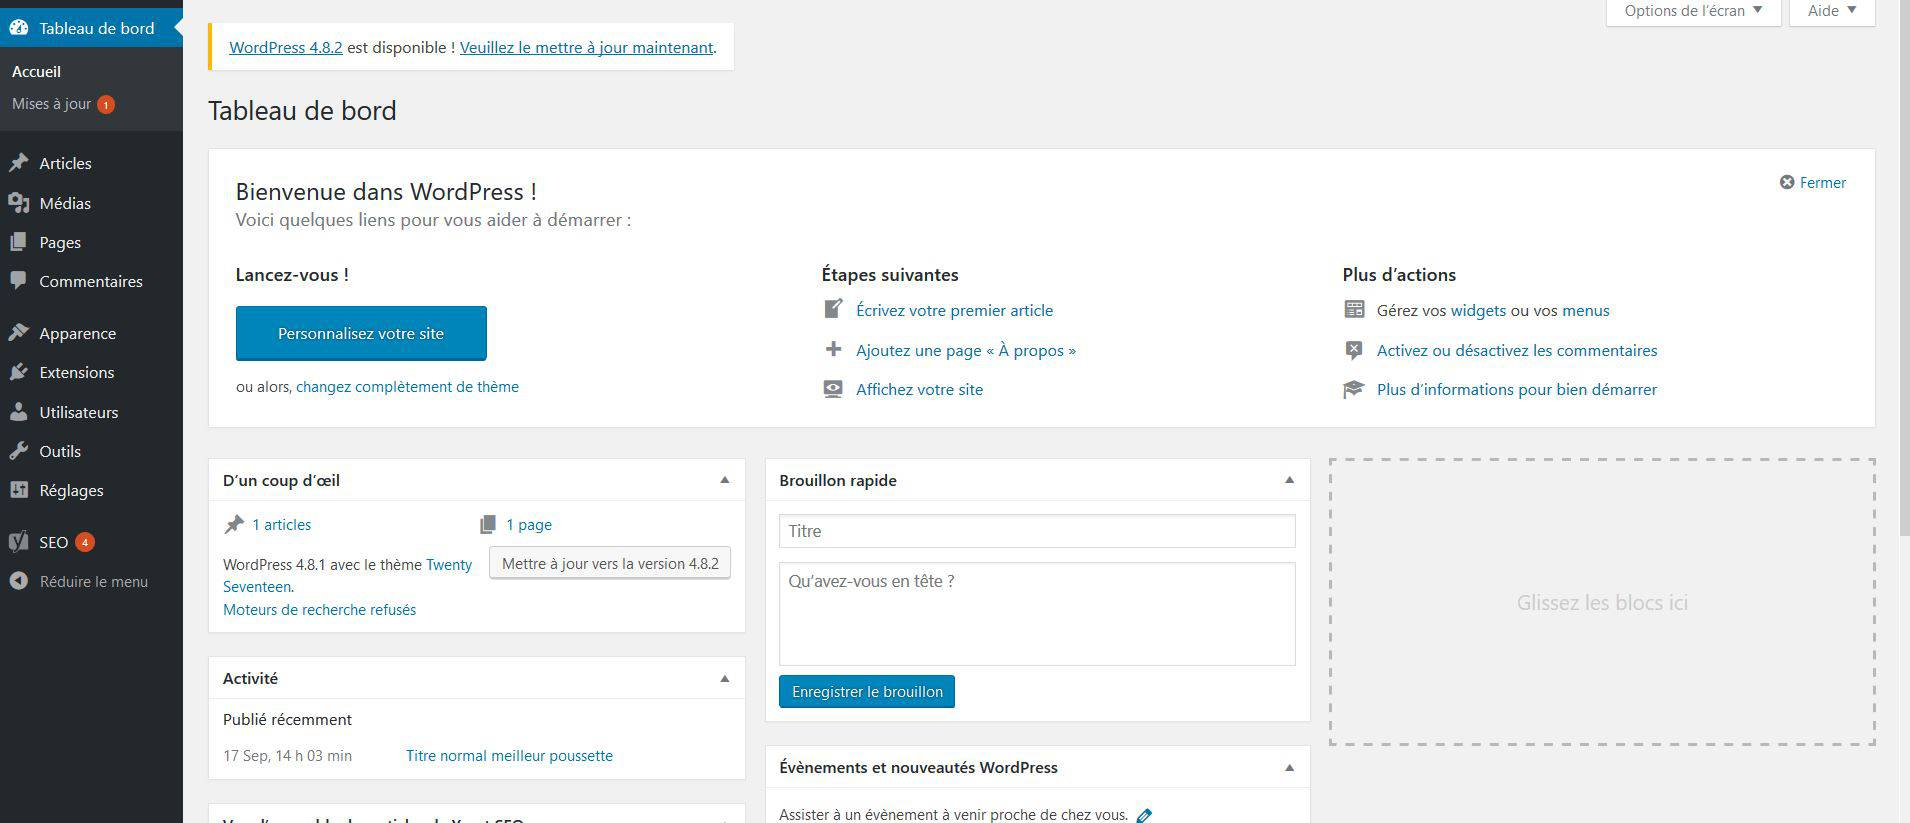 Administration de WordPress